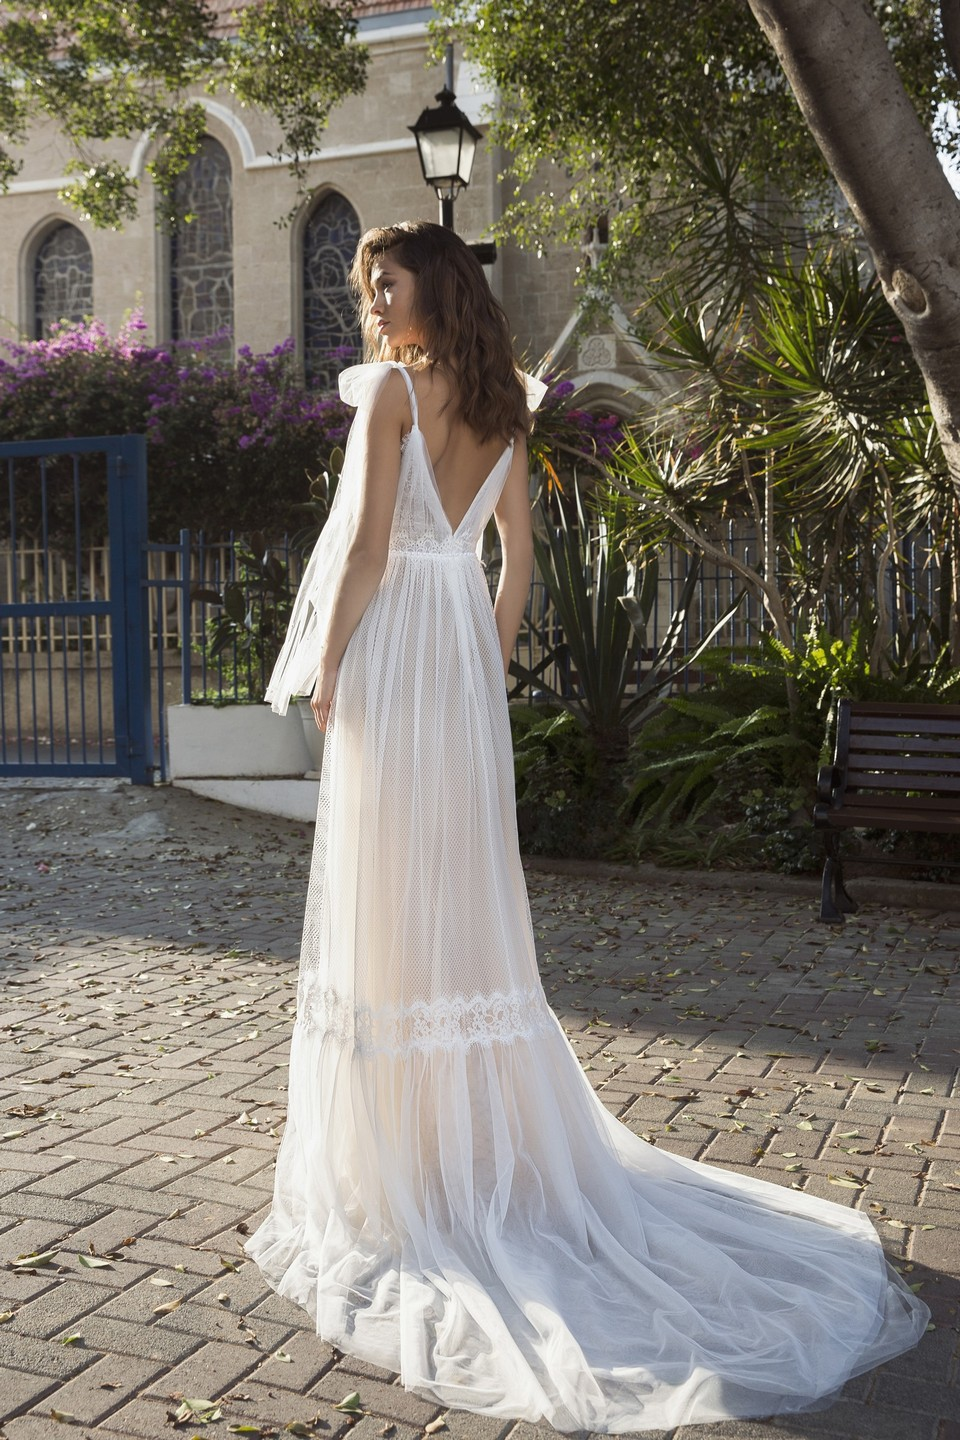 Boho Wedding Dress for Summer Wedding